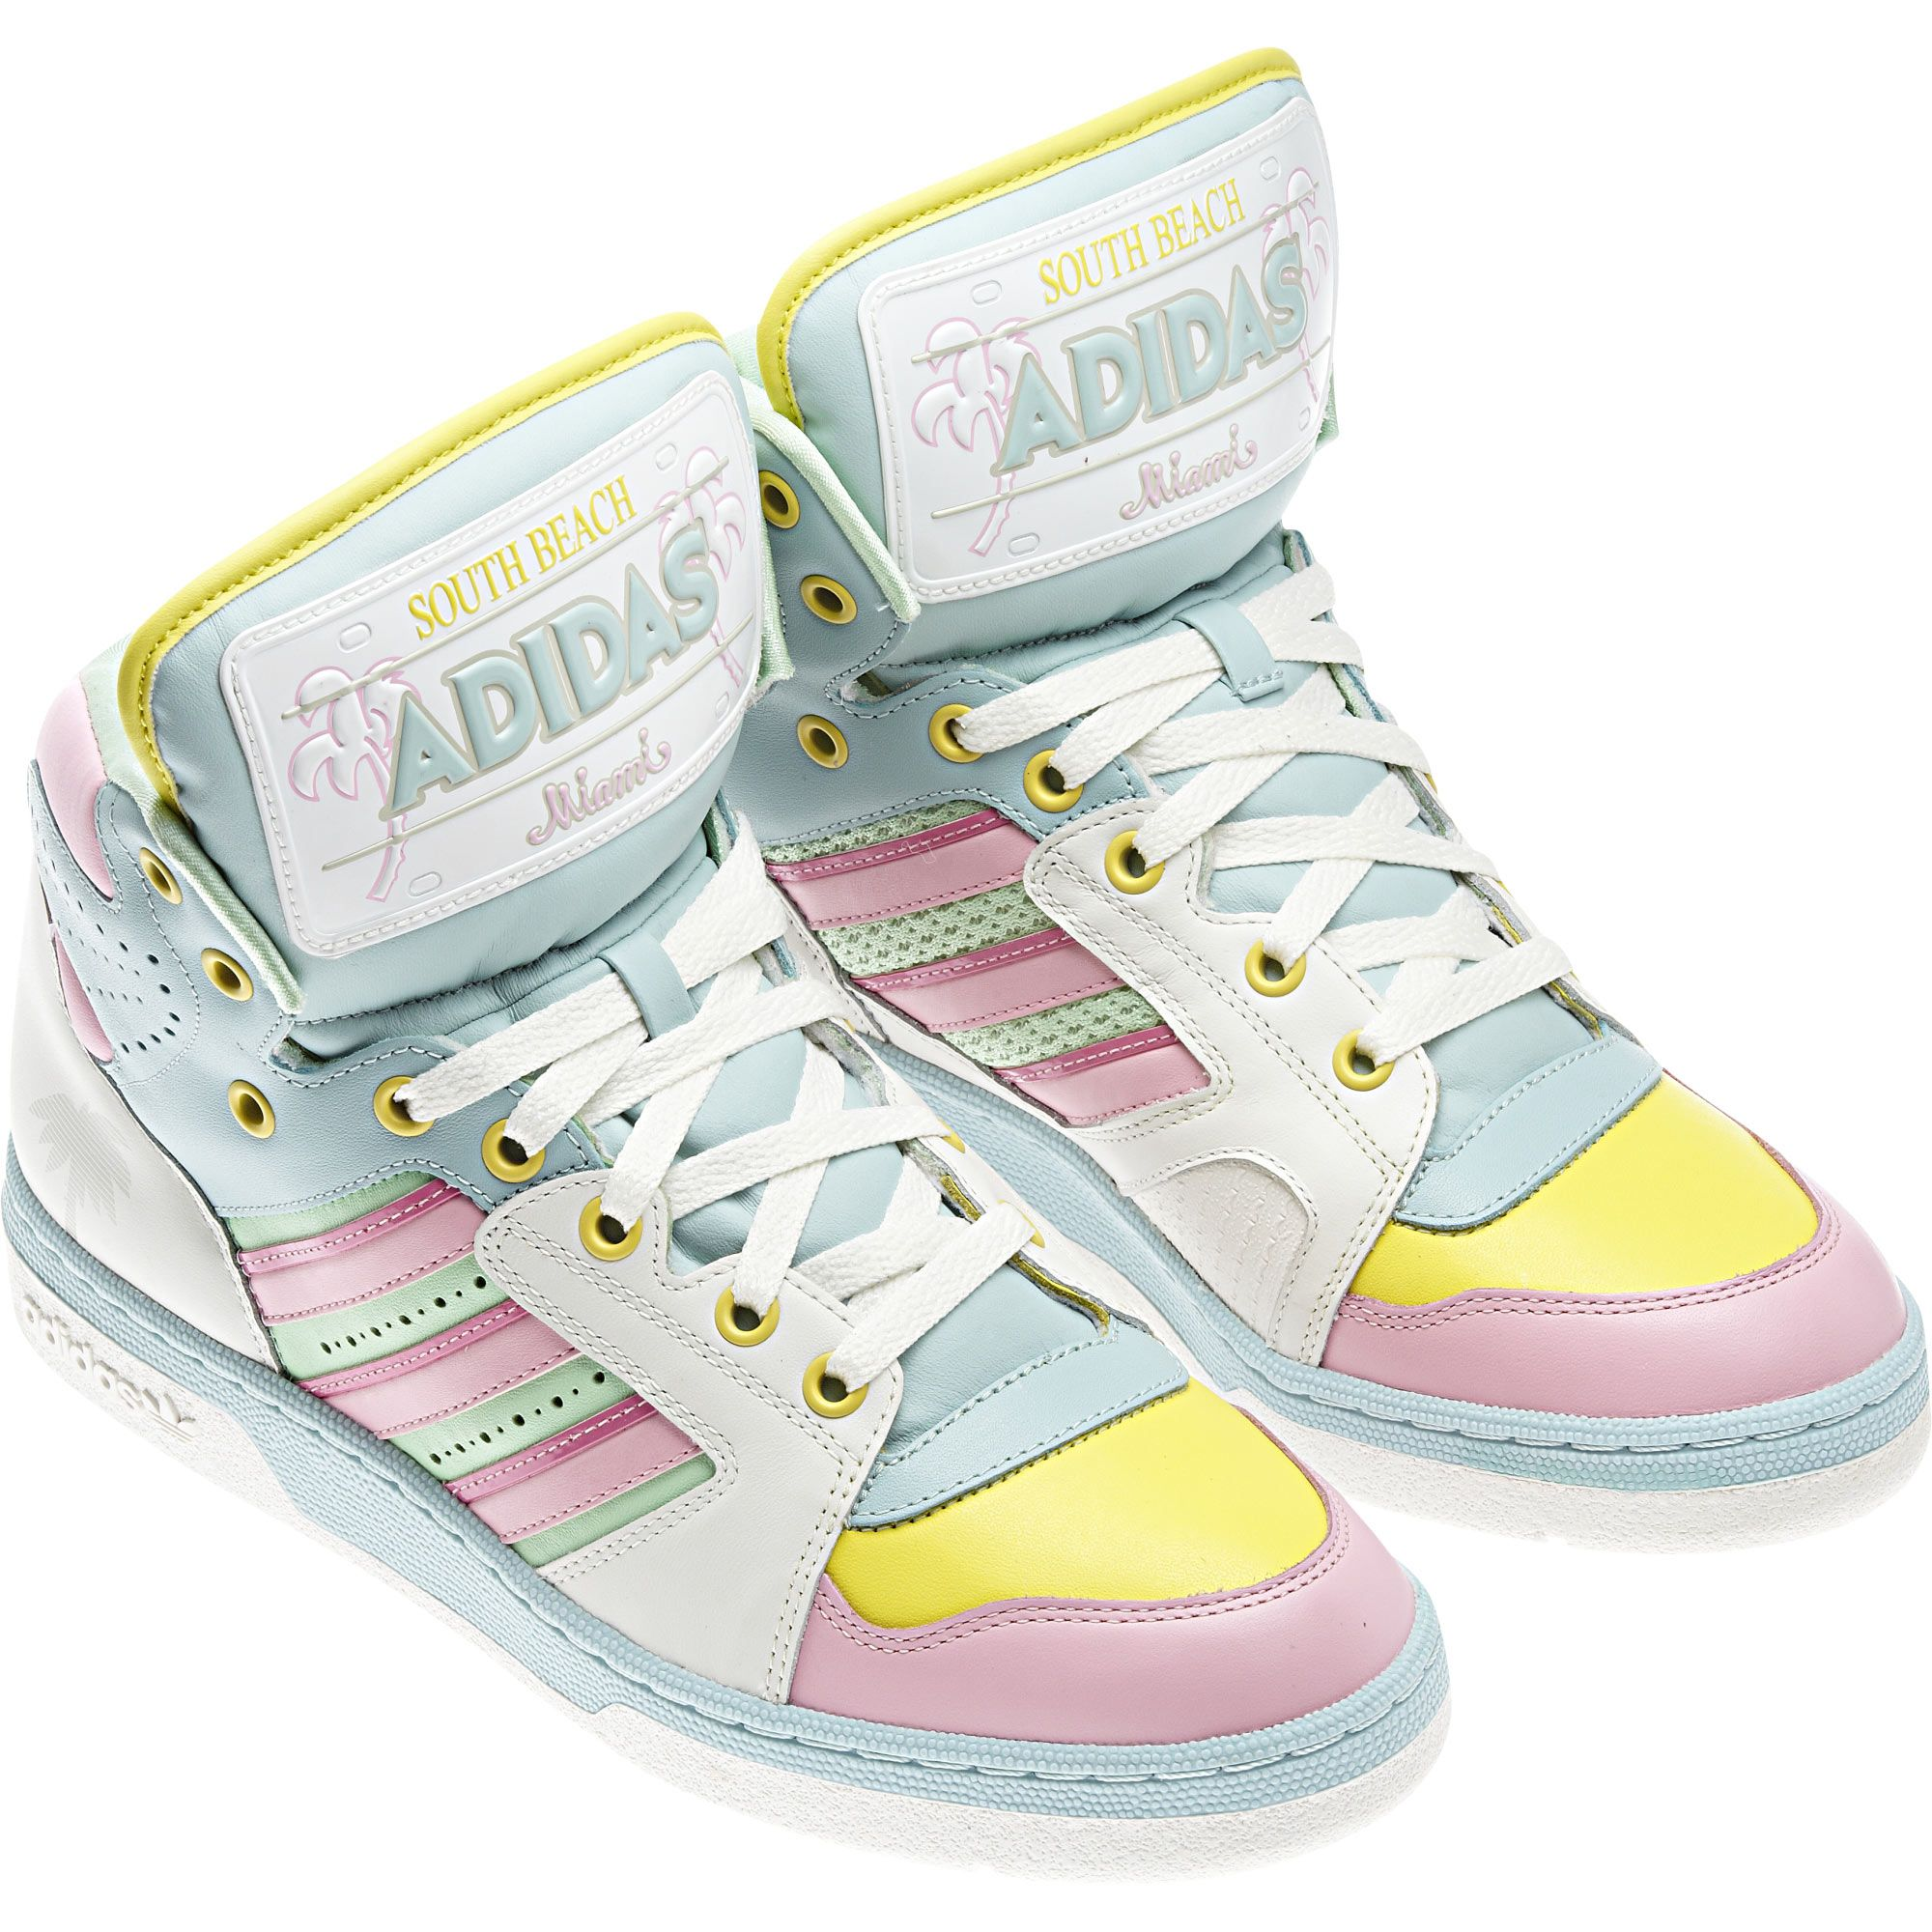 b567f6146948 adidas Jeremy Scott License Plate Miami Shoes  jeremyscott  shoes  adidas  For a sunny Miami vibe